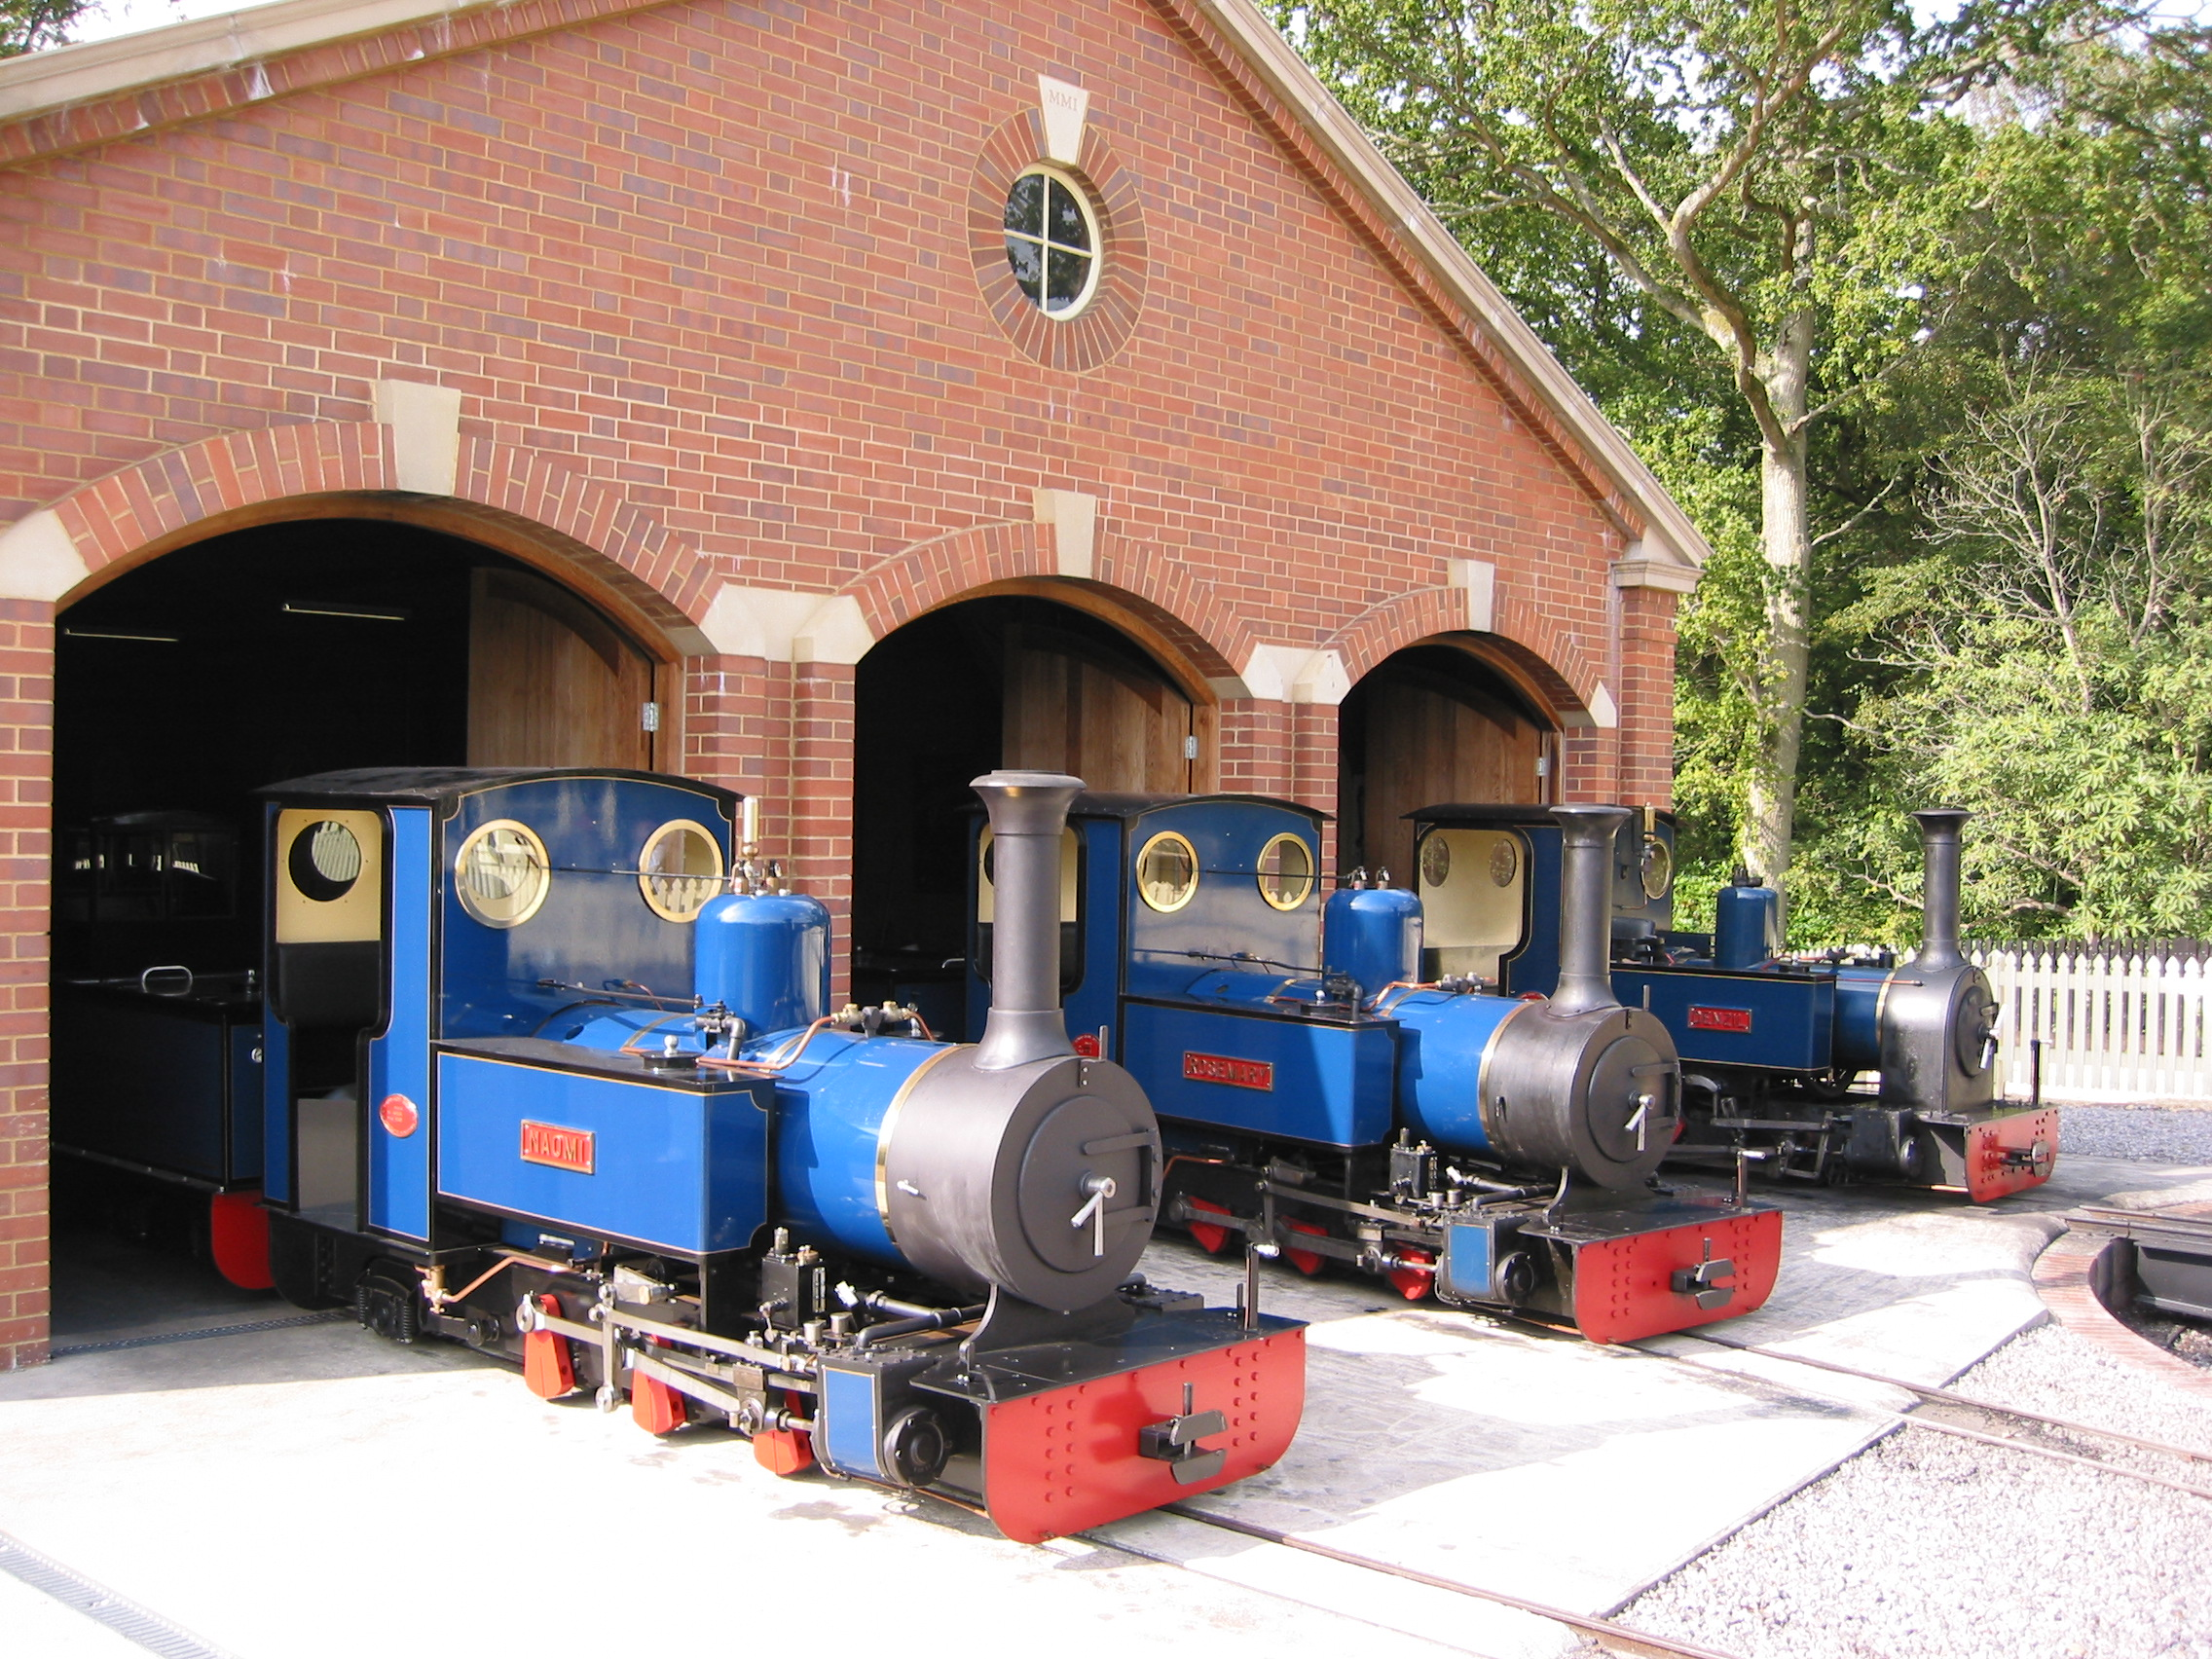 The Exbury Engine Shed will open for visitors with walk through displays in 2010